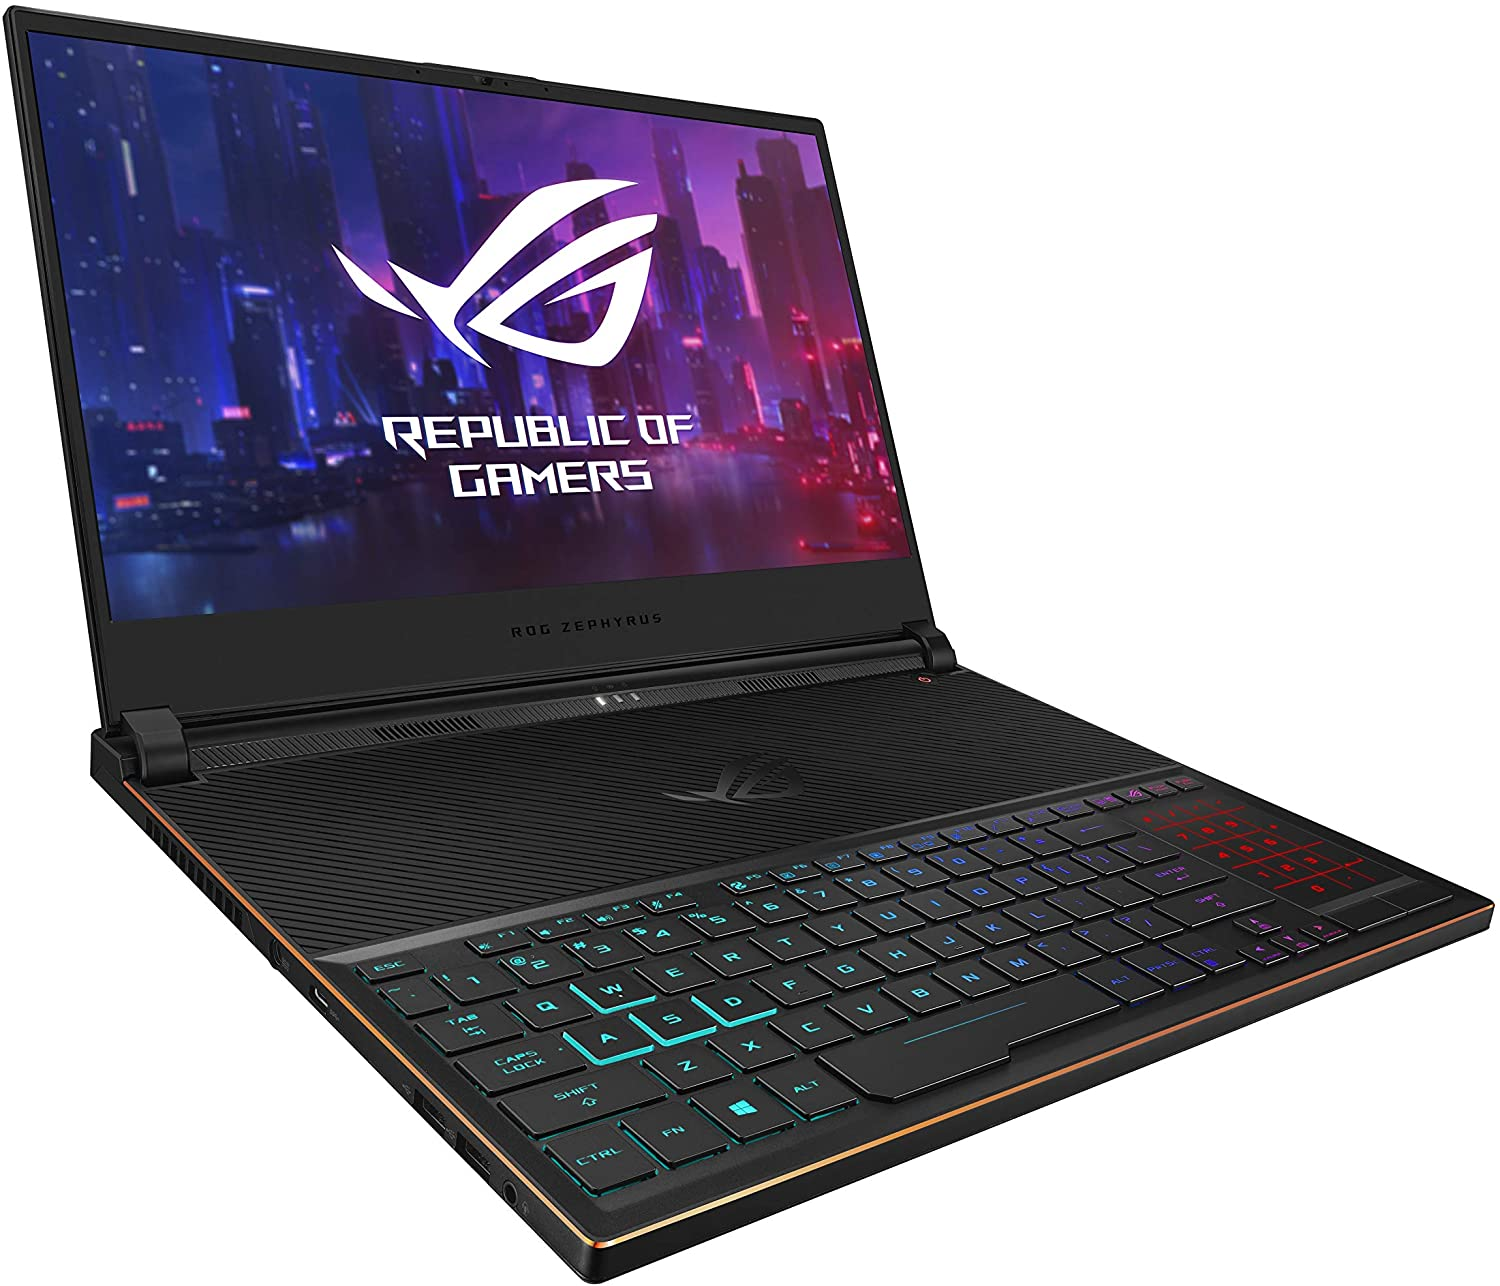 "ASUS ROG Zephyrus S Ultra Slim Gaming Laptop, 15.6"" 144Hz IPS-Type Full HD, GeForce RTX 2080, Intel Core i7-8750H CPU, 16GB DDR4, 512GB PCIe Nvme SSD, Aura Sync RGB, Windows 10 Pro - GX531GX-XS74"